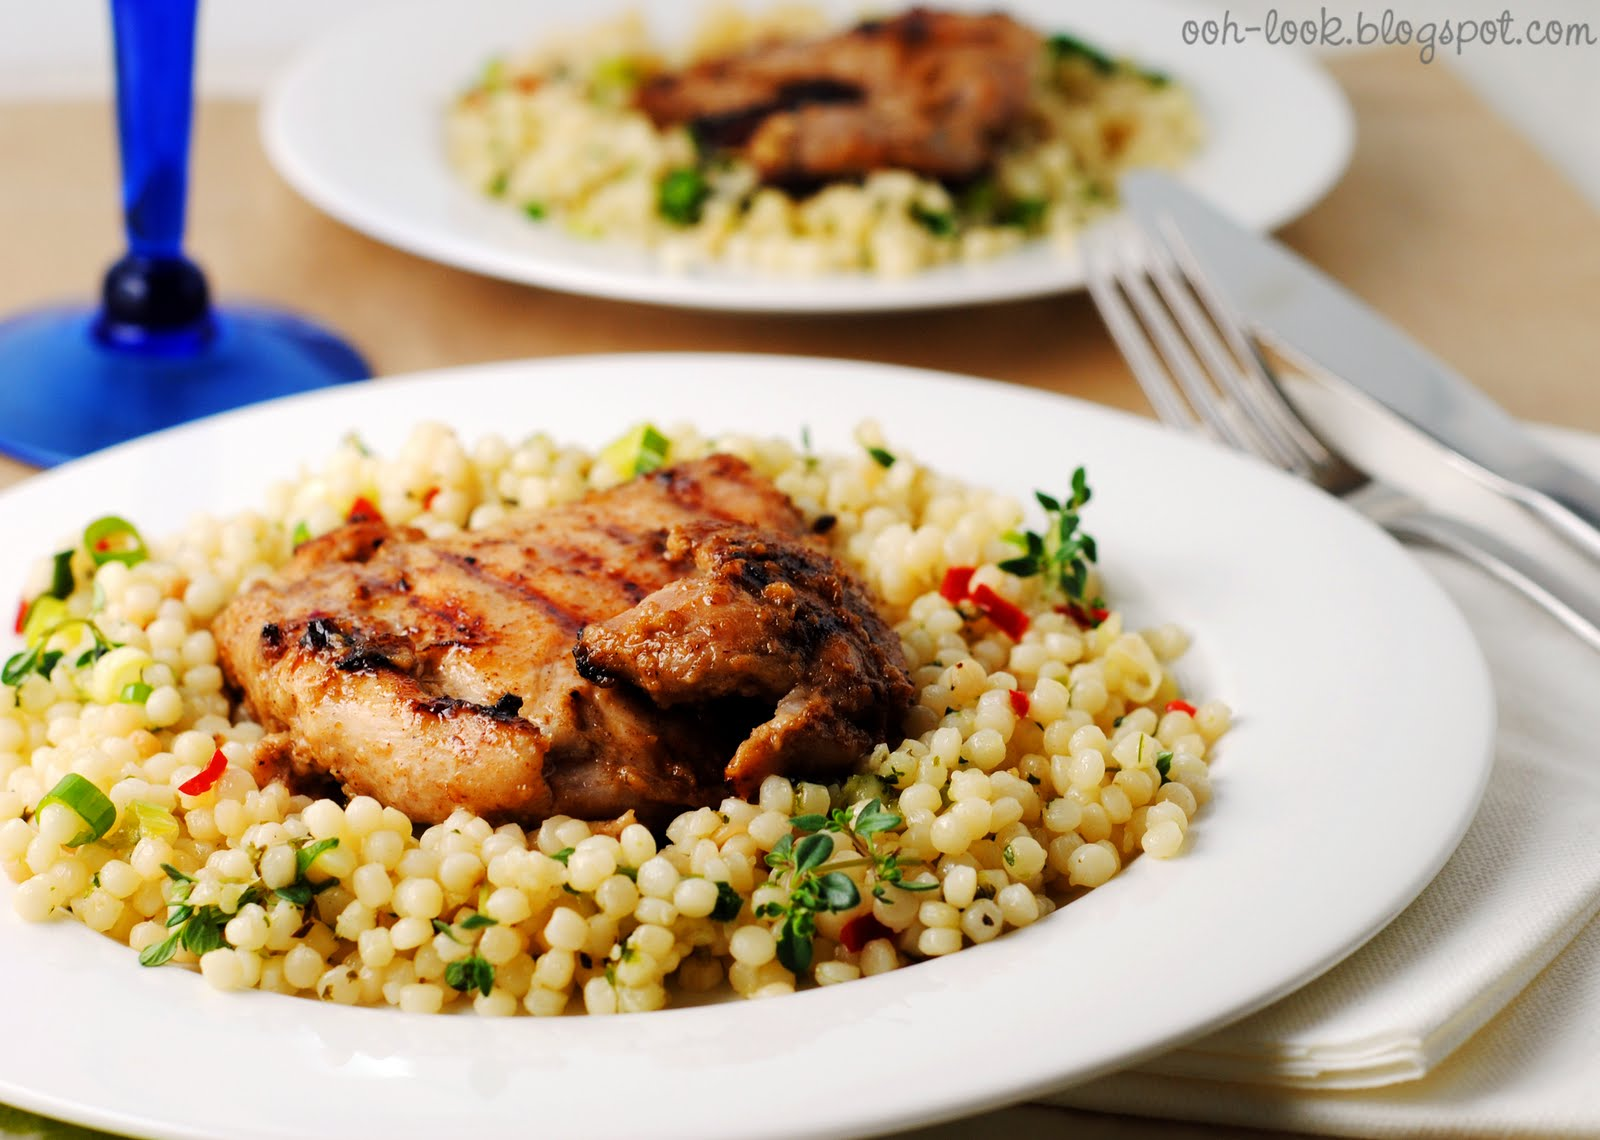 Ooh Look Ottolenghi S Chargrilled Chicken With Mograbiah